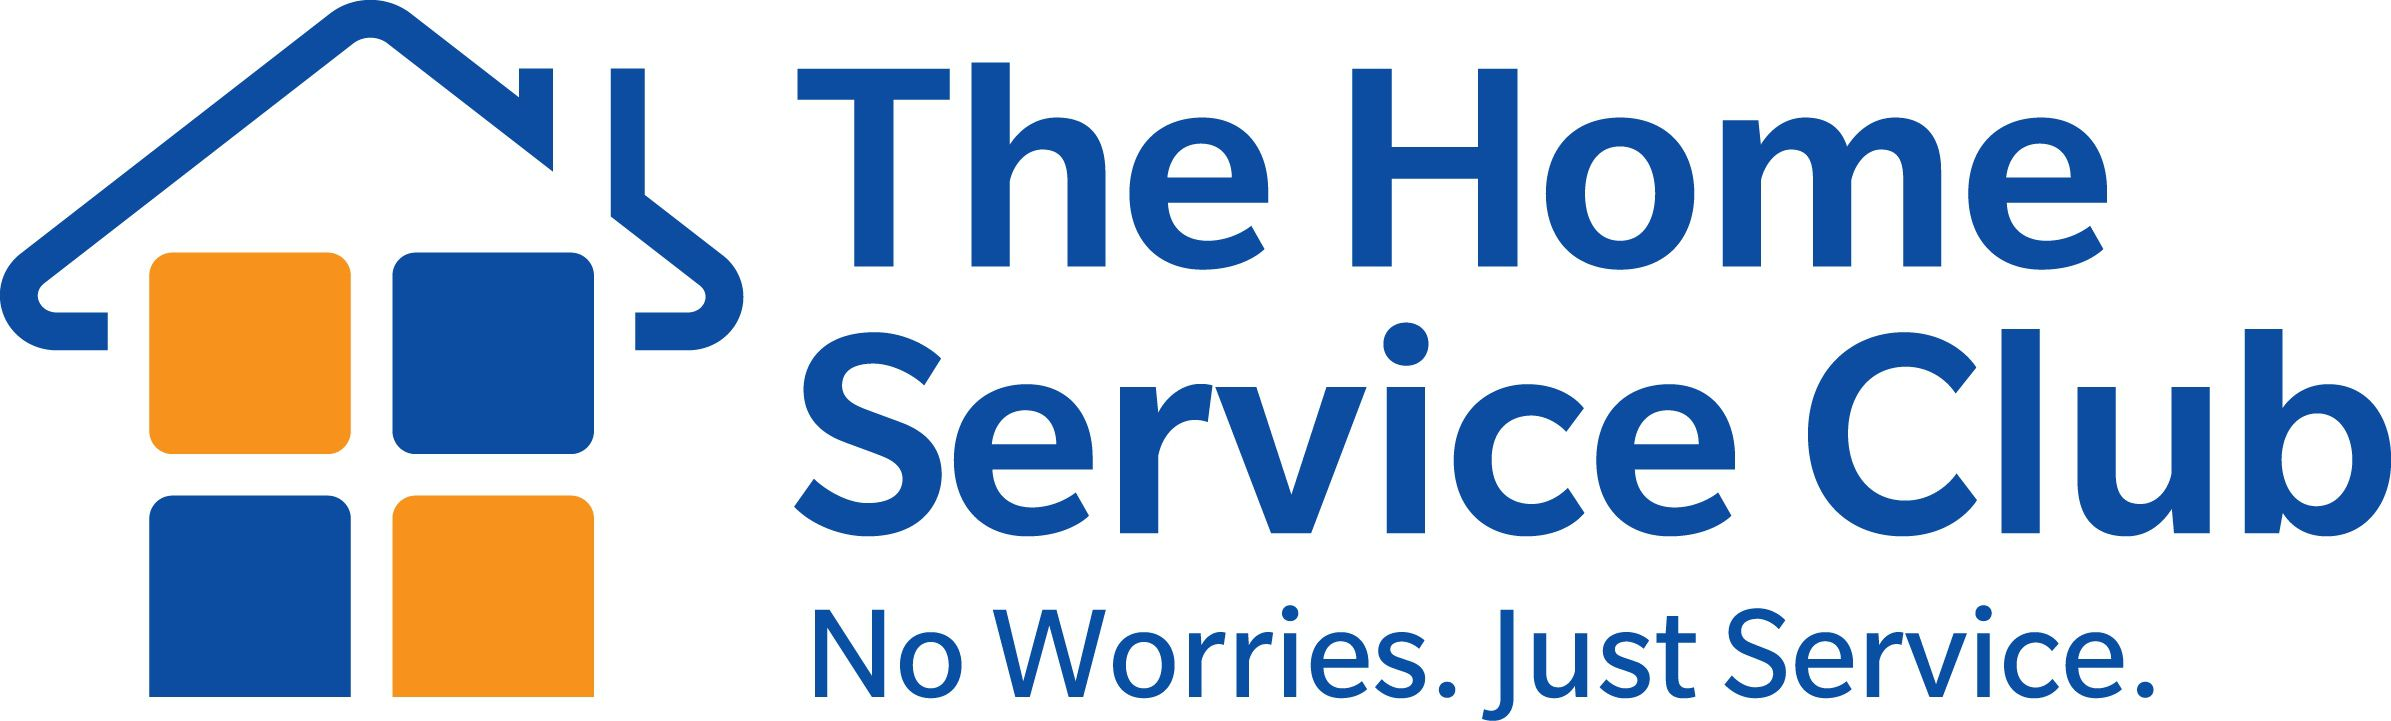 The Home Service Club